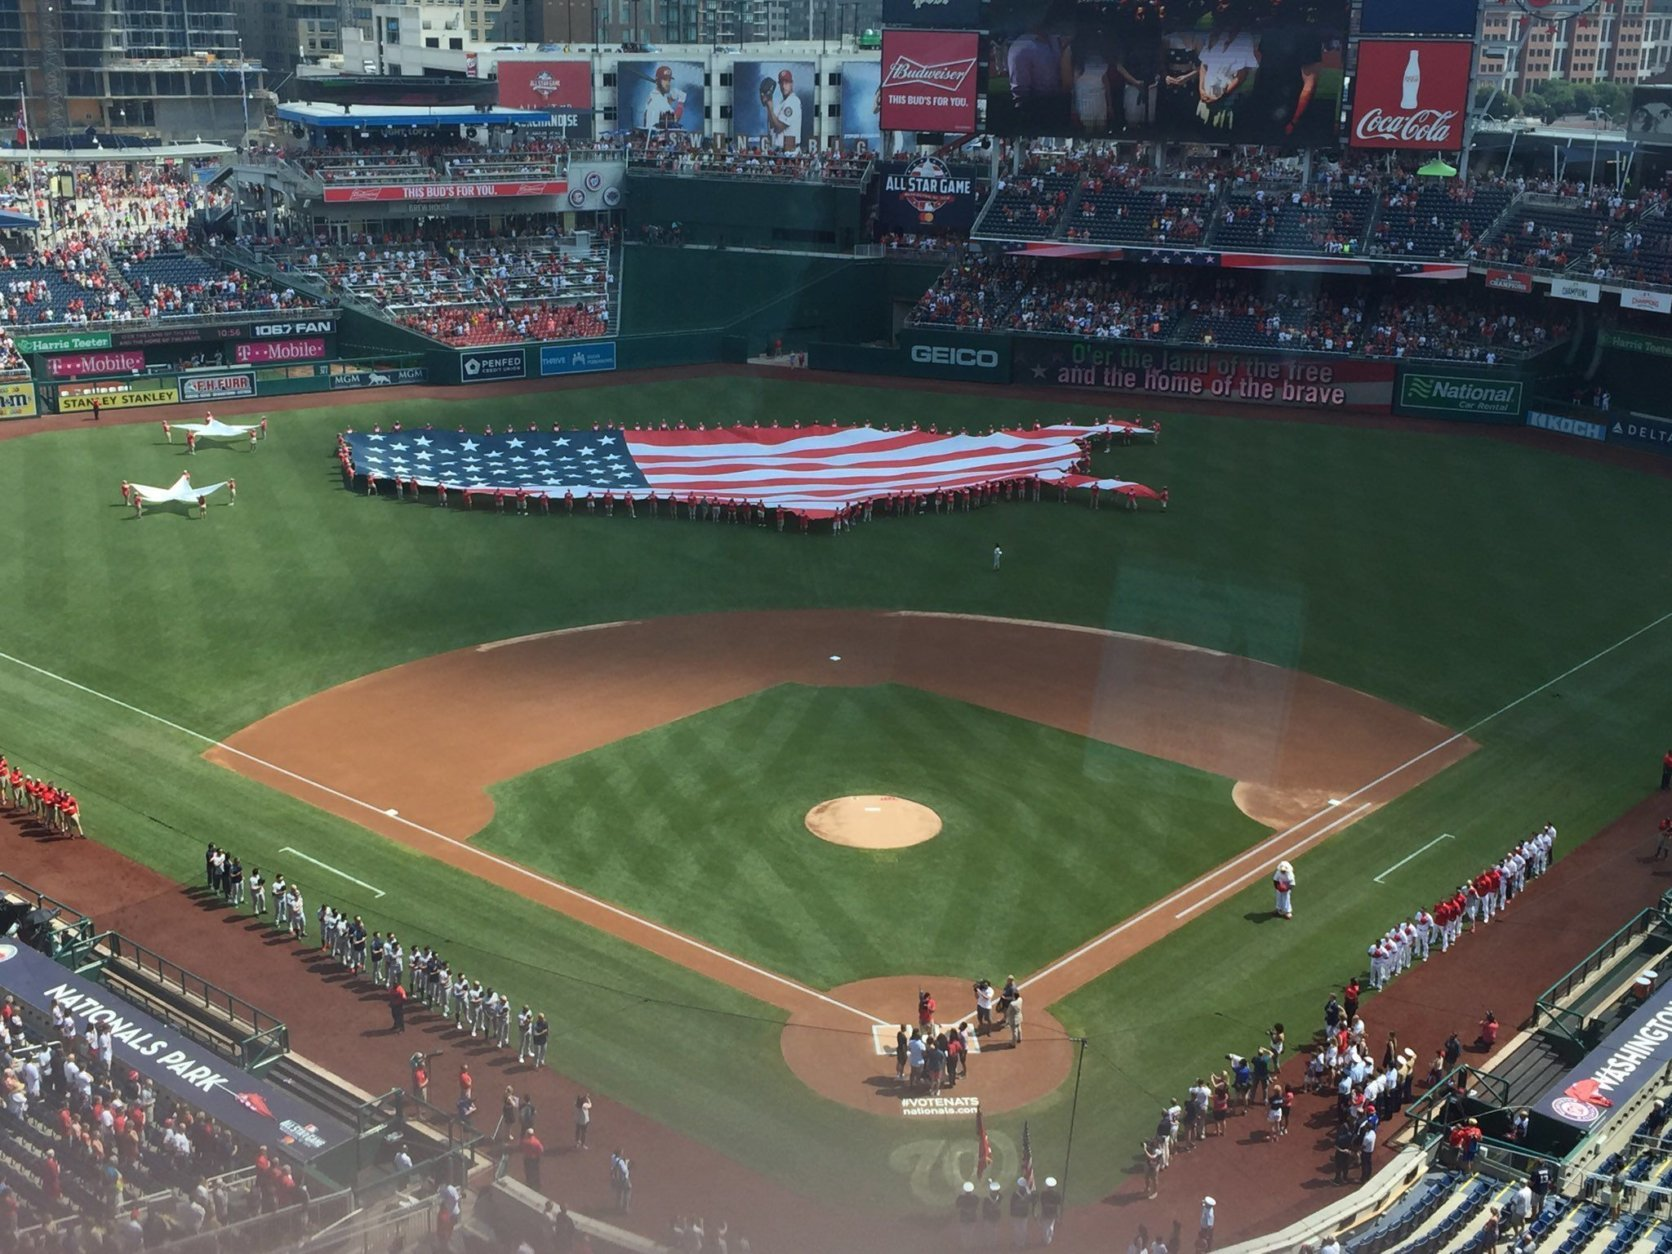 A flag in the shape of the United States is seen at Nationals Park in D.C. on Fourth of July 2018. (WTOP/Jonathan Warner)